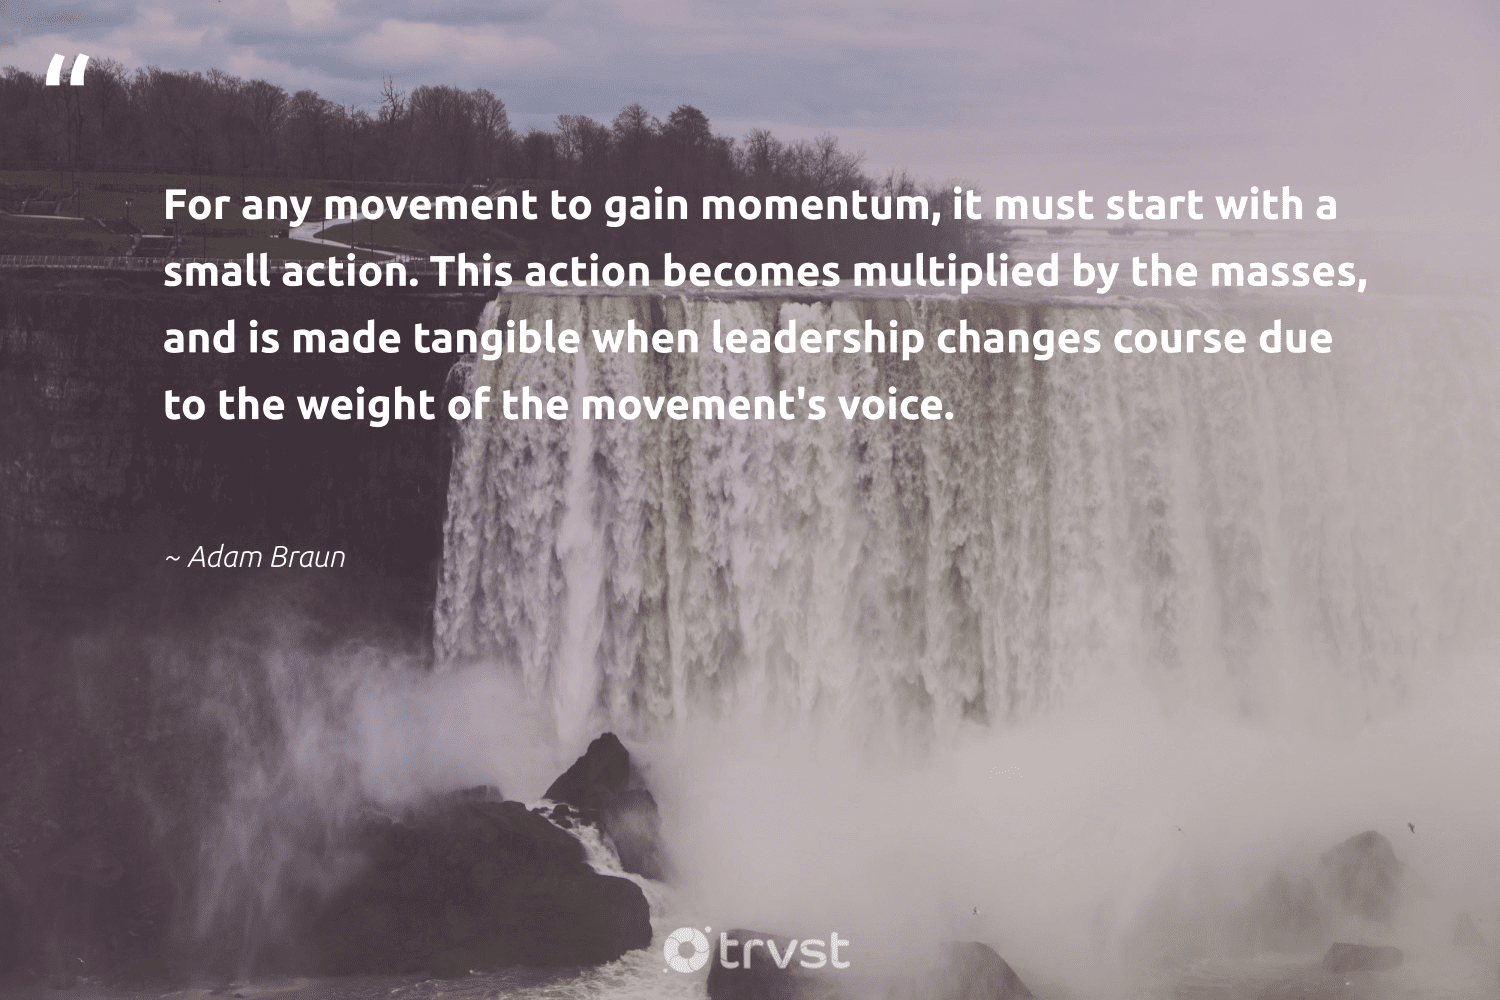 """""""For any movement to gain momentum, it must start with a small action. This action becomes multiplied by the masses, and is made tangible when leadership changes course due to the weight of the movement's voice.""""  - Adam Braun #trvst #quotes #leadership #leadershipskills #softskills #futureofwork #socialchange #leadershipdevelopment #begreat #nevergiveup #gogreen #leadershipqualities"""